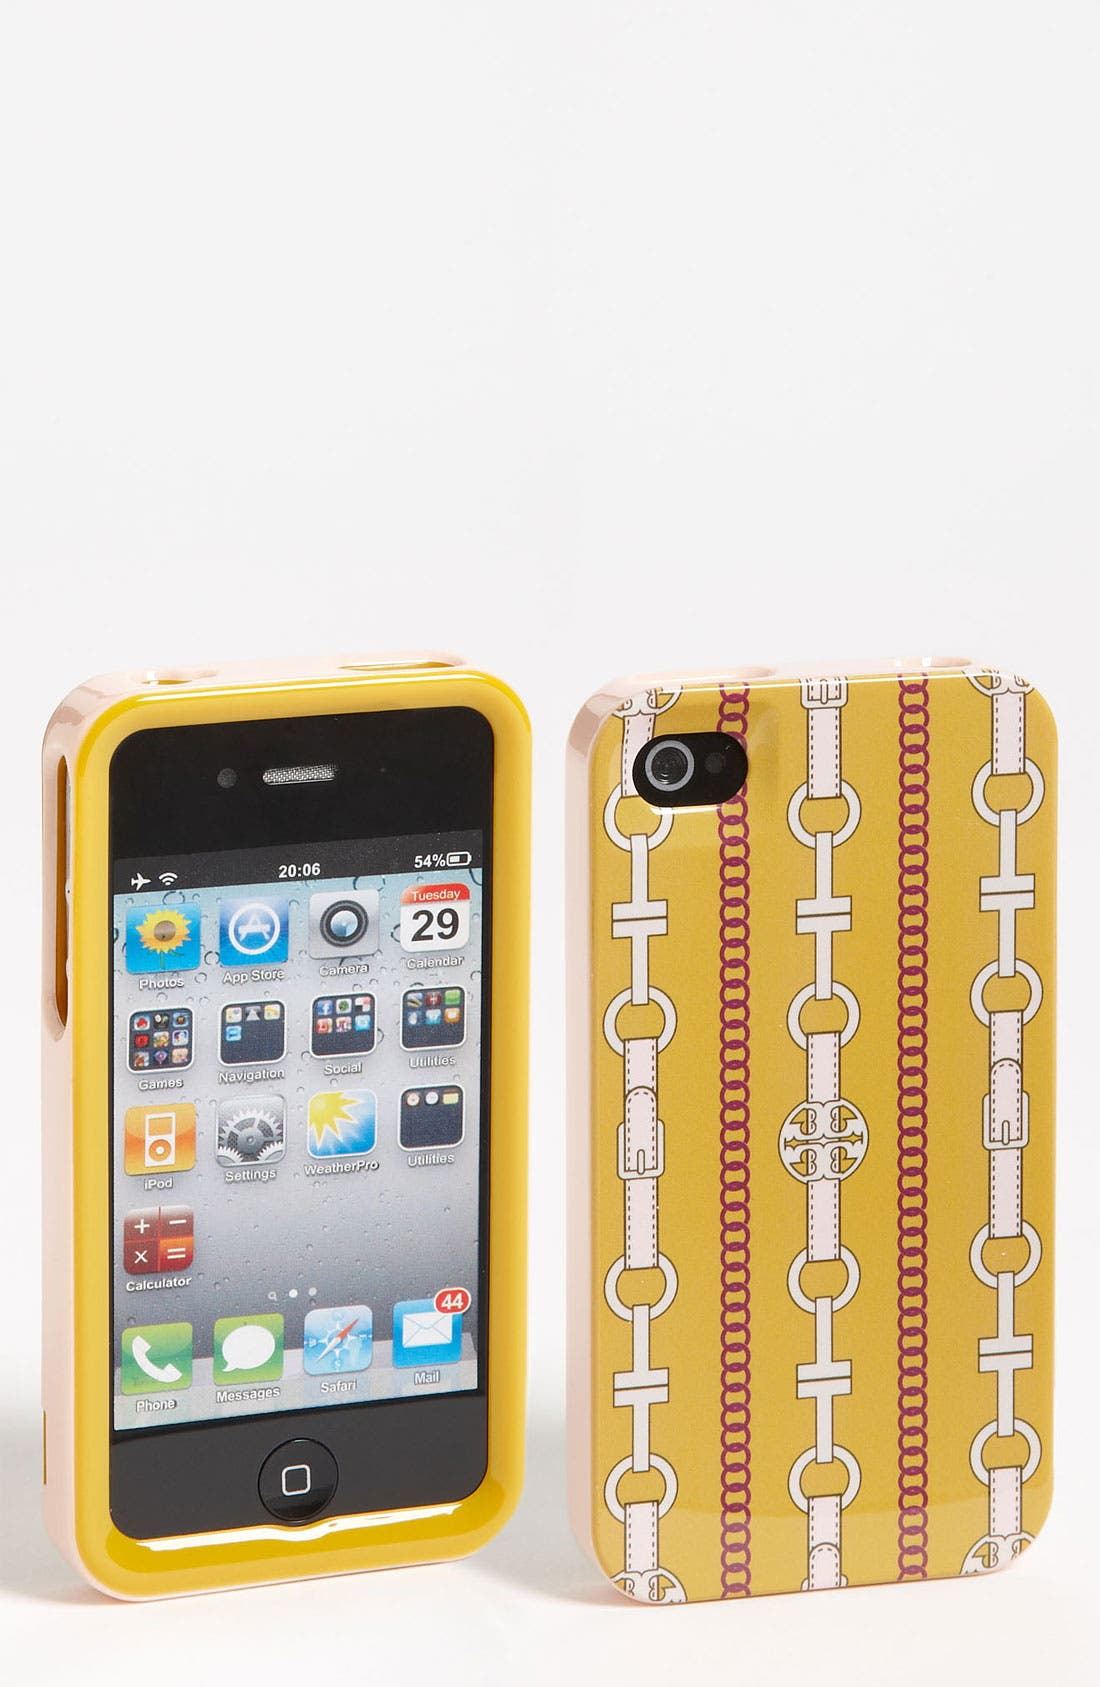 Main Image - Tory Burch 'T-Belts' iPhone 4 Case